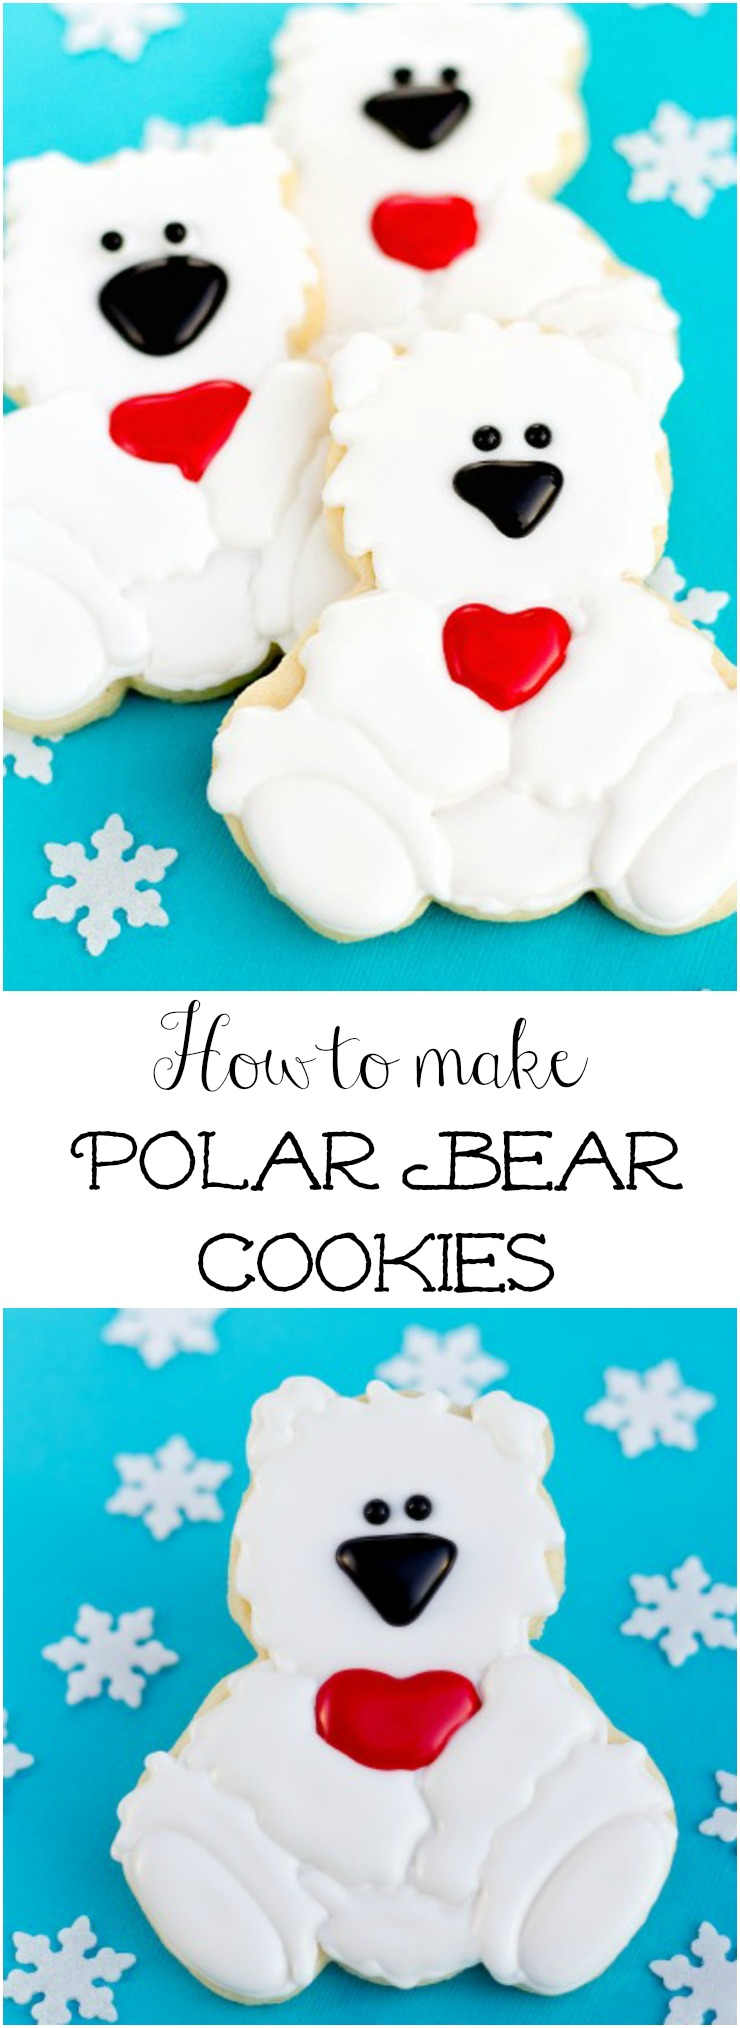 Simple Polar Bear Cookies via www.thebearfootbaker.com